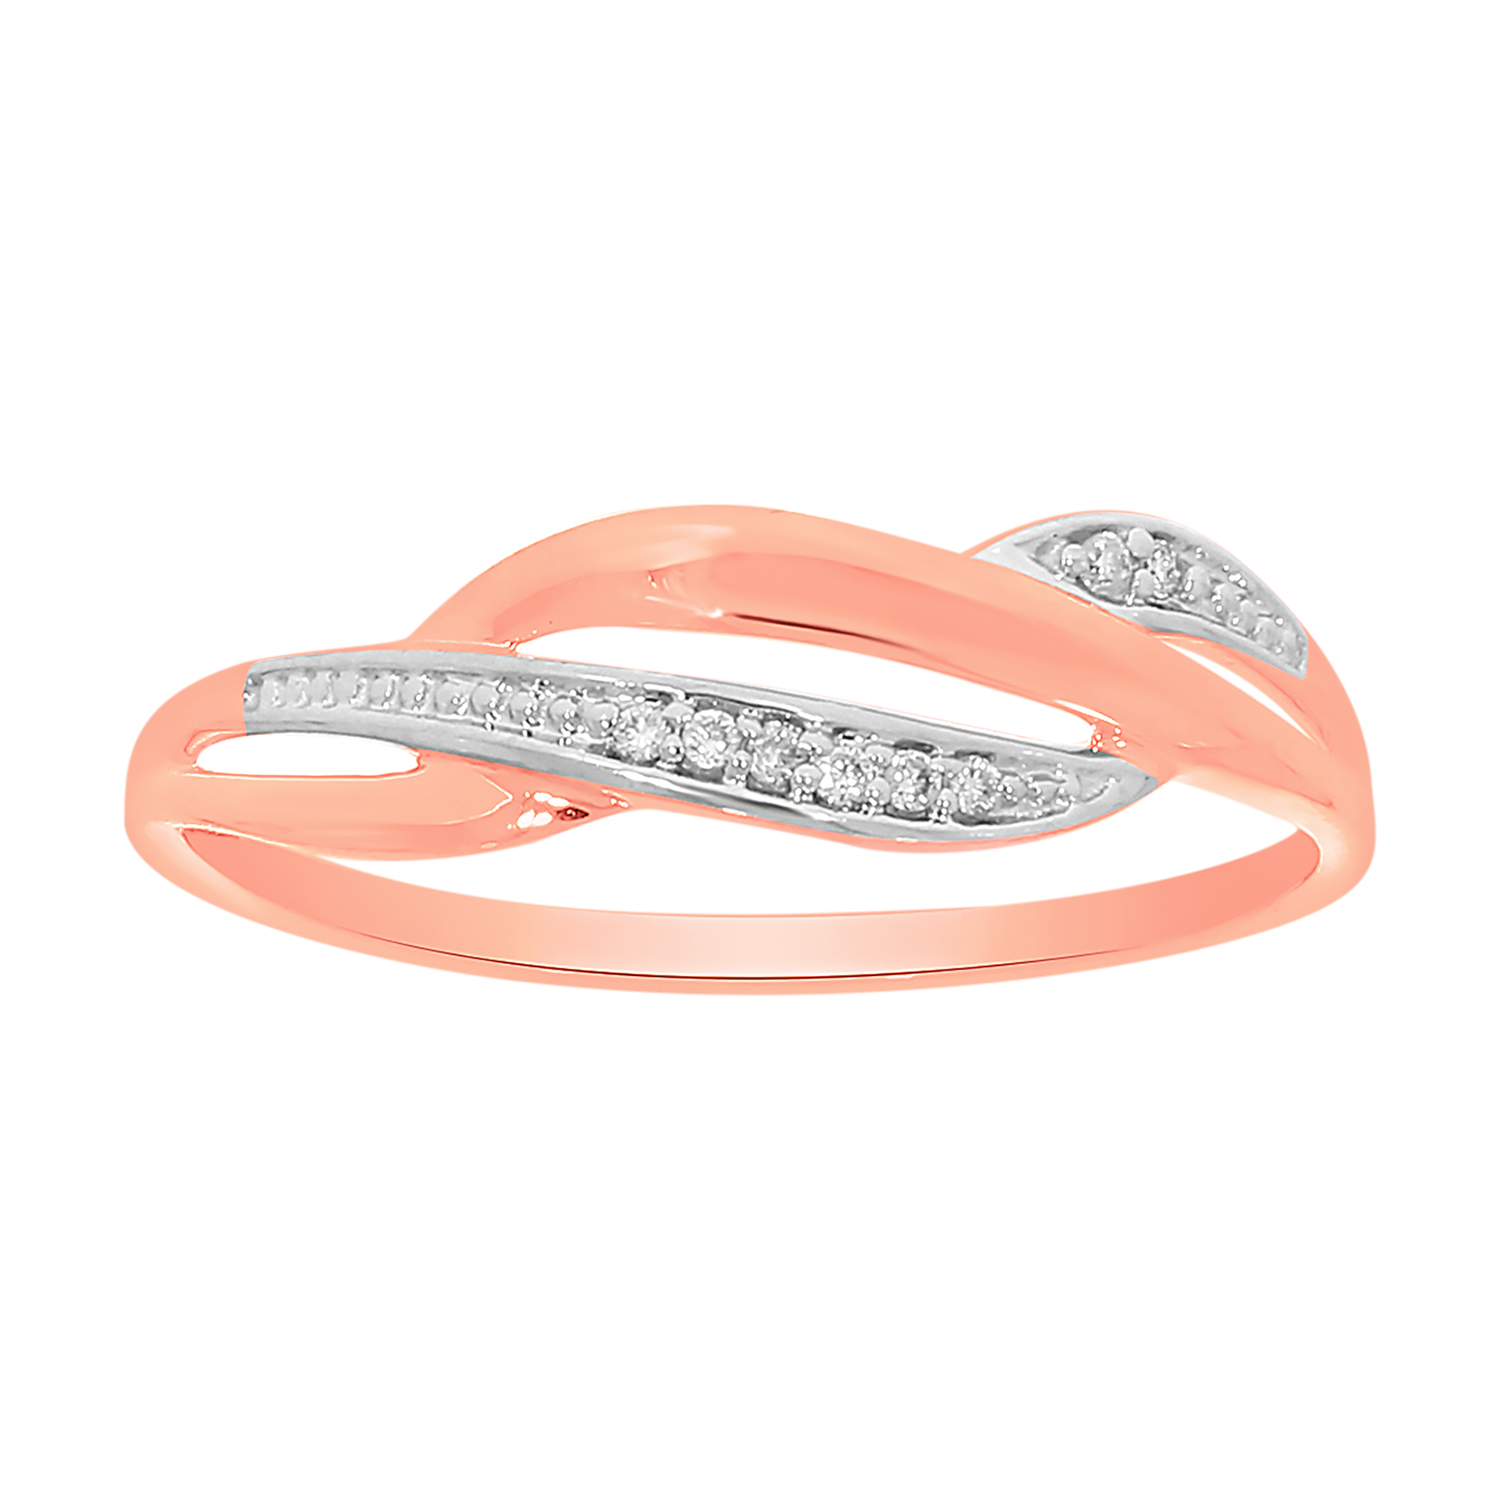 9ct Rose Gold Diamond Ring with 8 Briliiant Diamonds